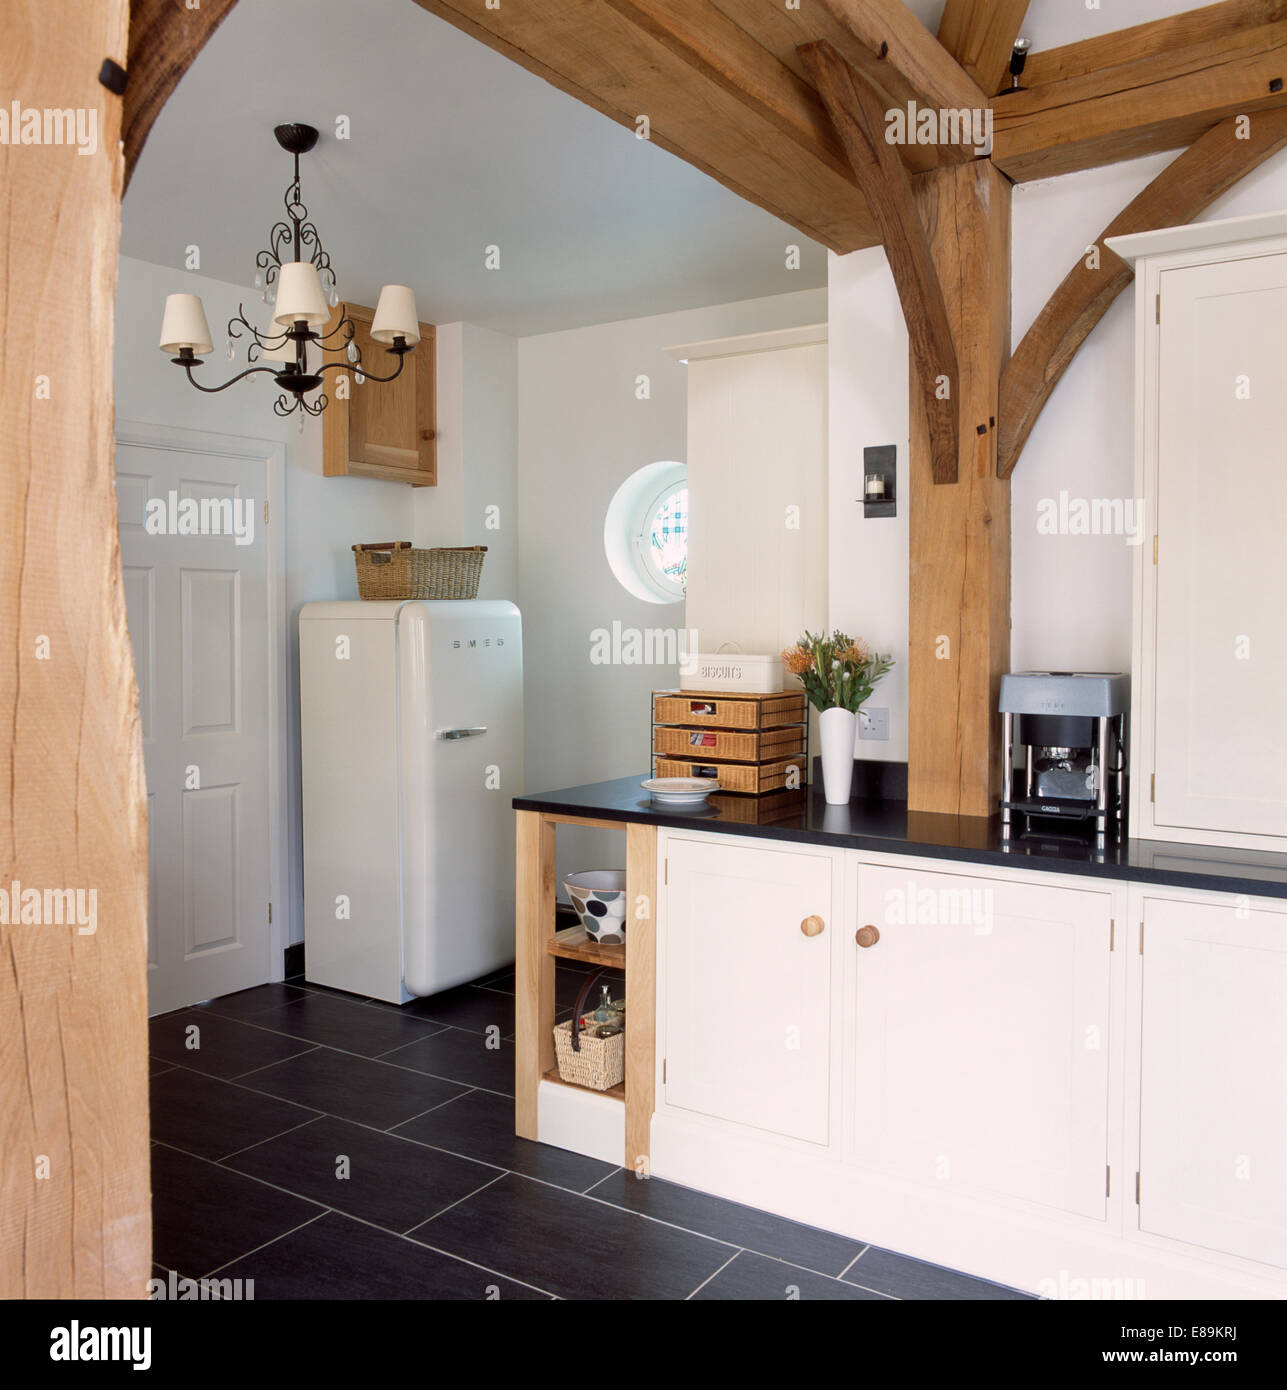 Slate Flooring Kitchen Large Wooden Beams In Barn Conversion Kitchen With Smeg Fridge And